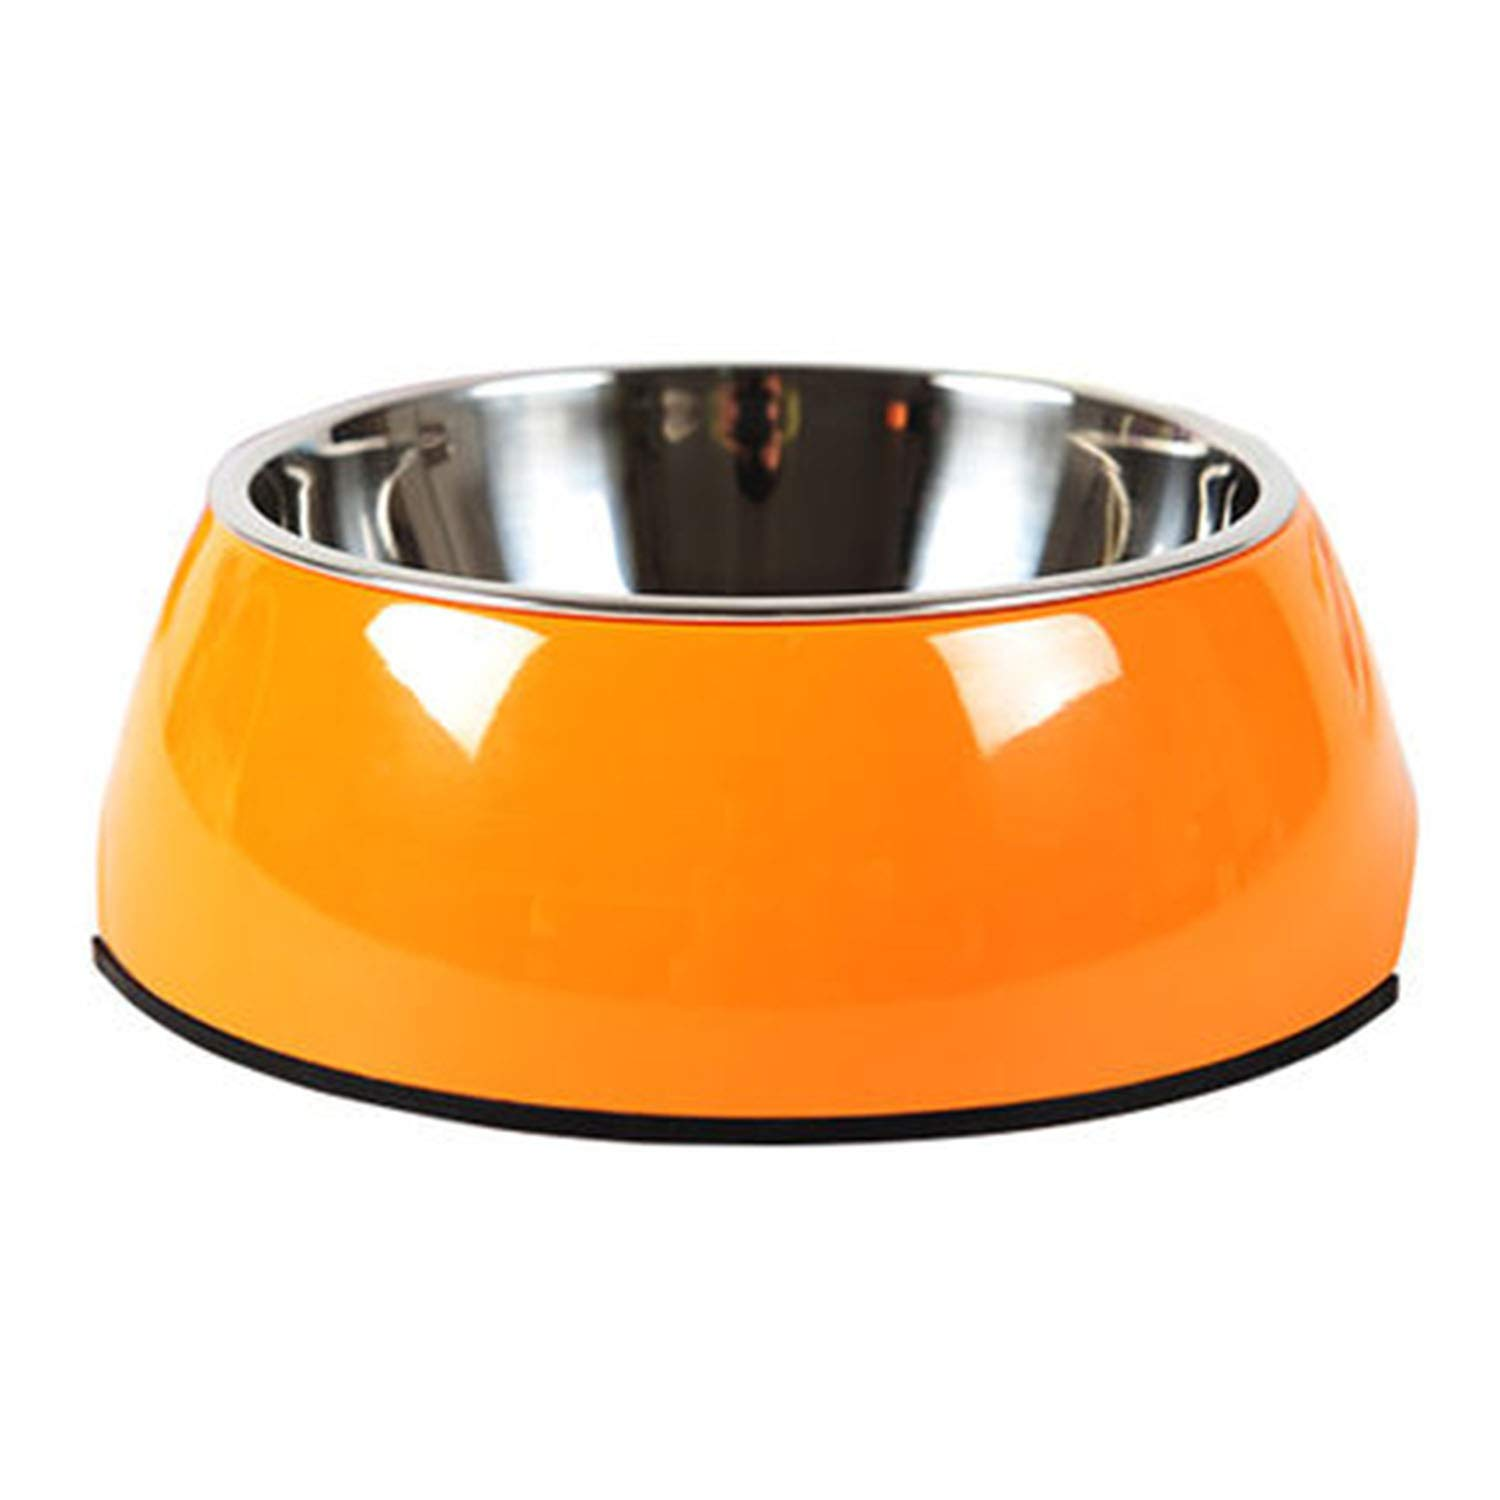 orange L orange L Manda Ocean Pet Bowls Stainless Steel Dog Cat Pet Bowl Universal Pet Water and Food Bowls 4 Sizes and 5 colors Available (L, orange)